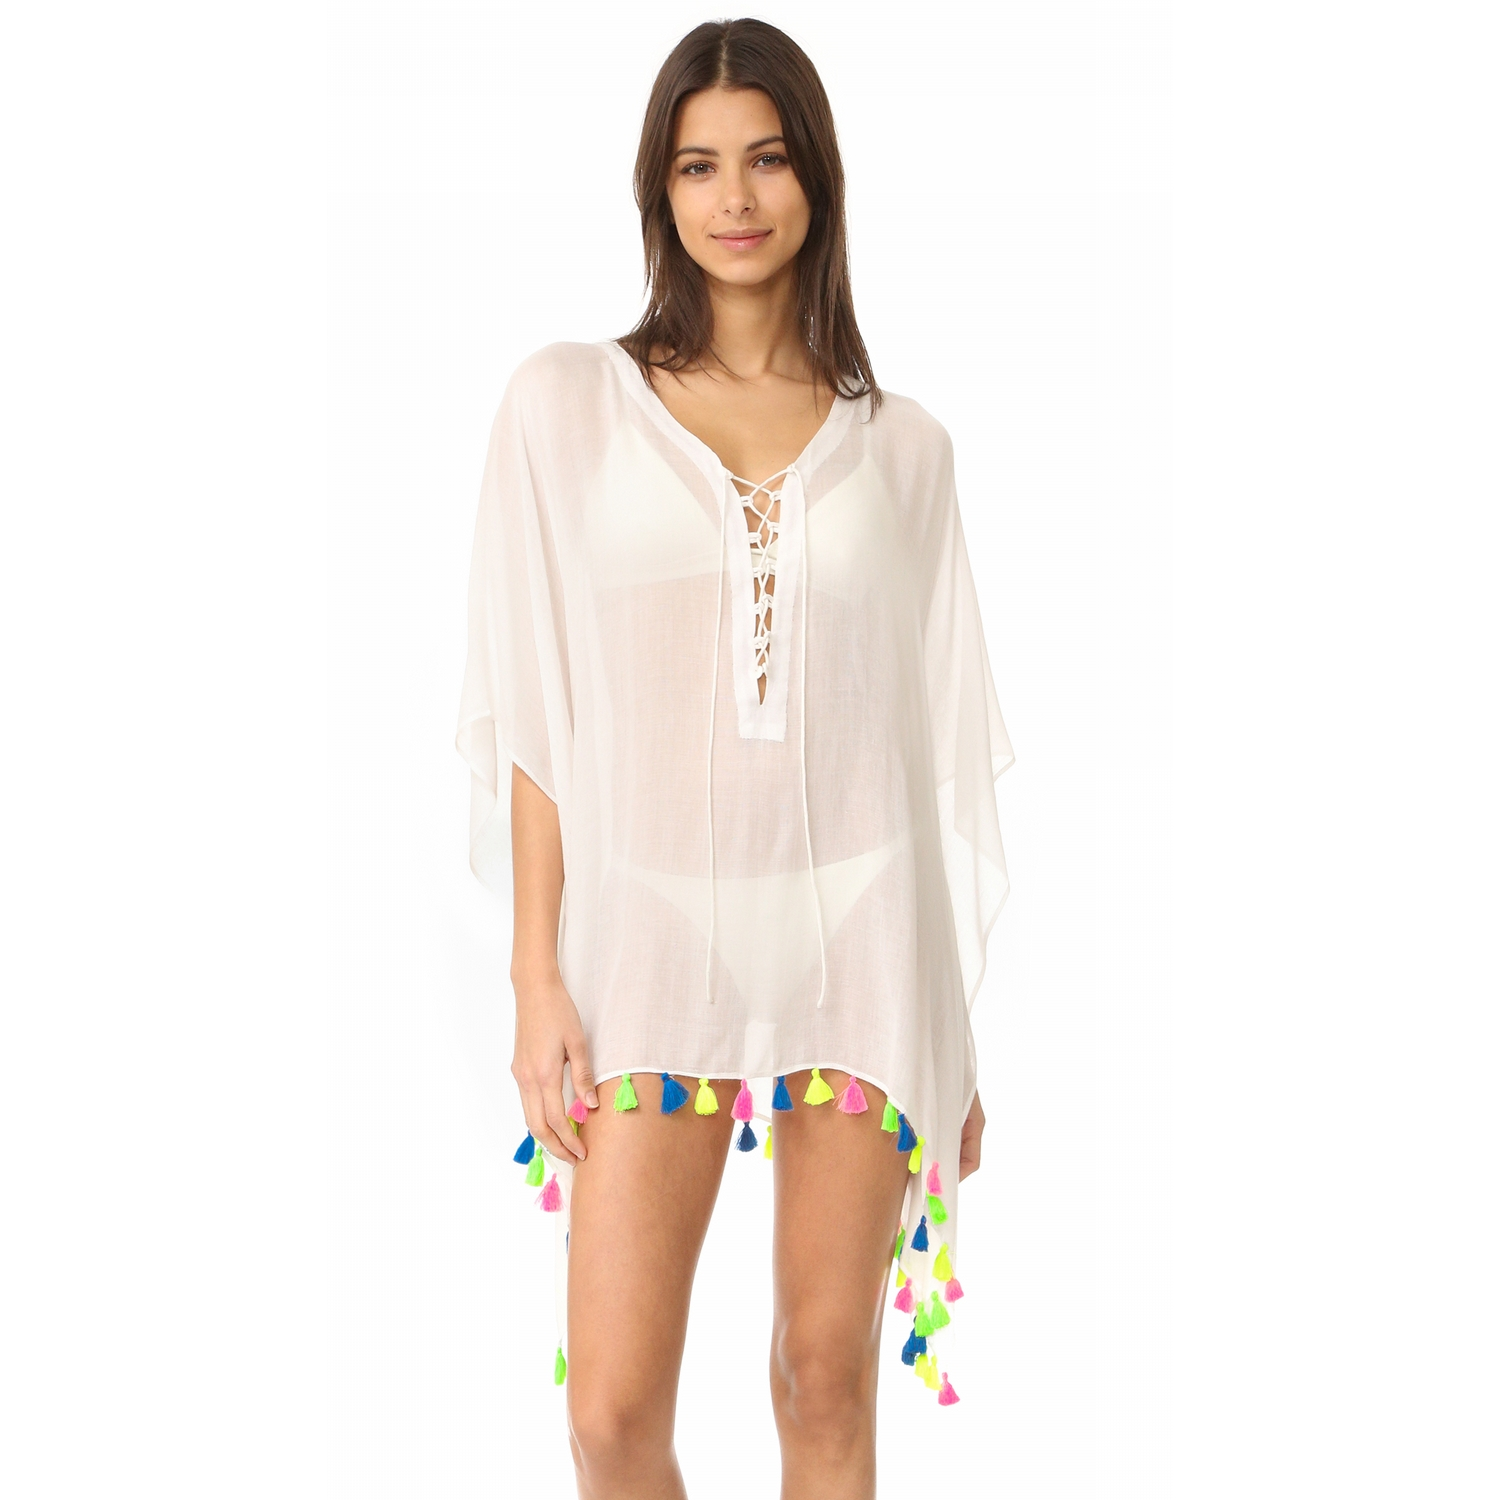 660cf7b62a0 Bindya Lace Up Cover Up Dress - White | Shop Your Way: Online ...